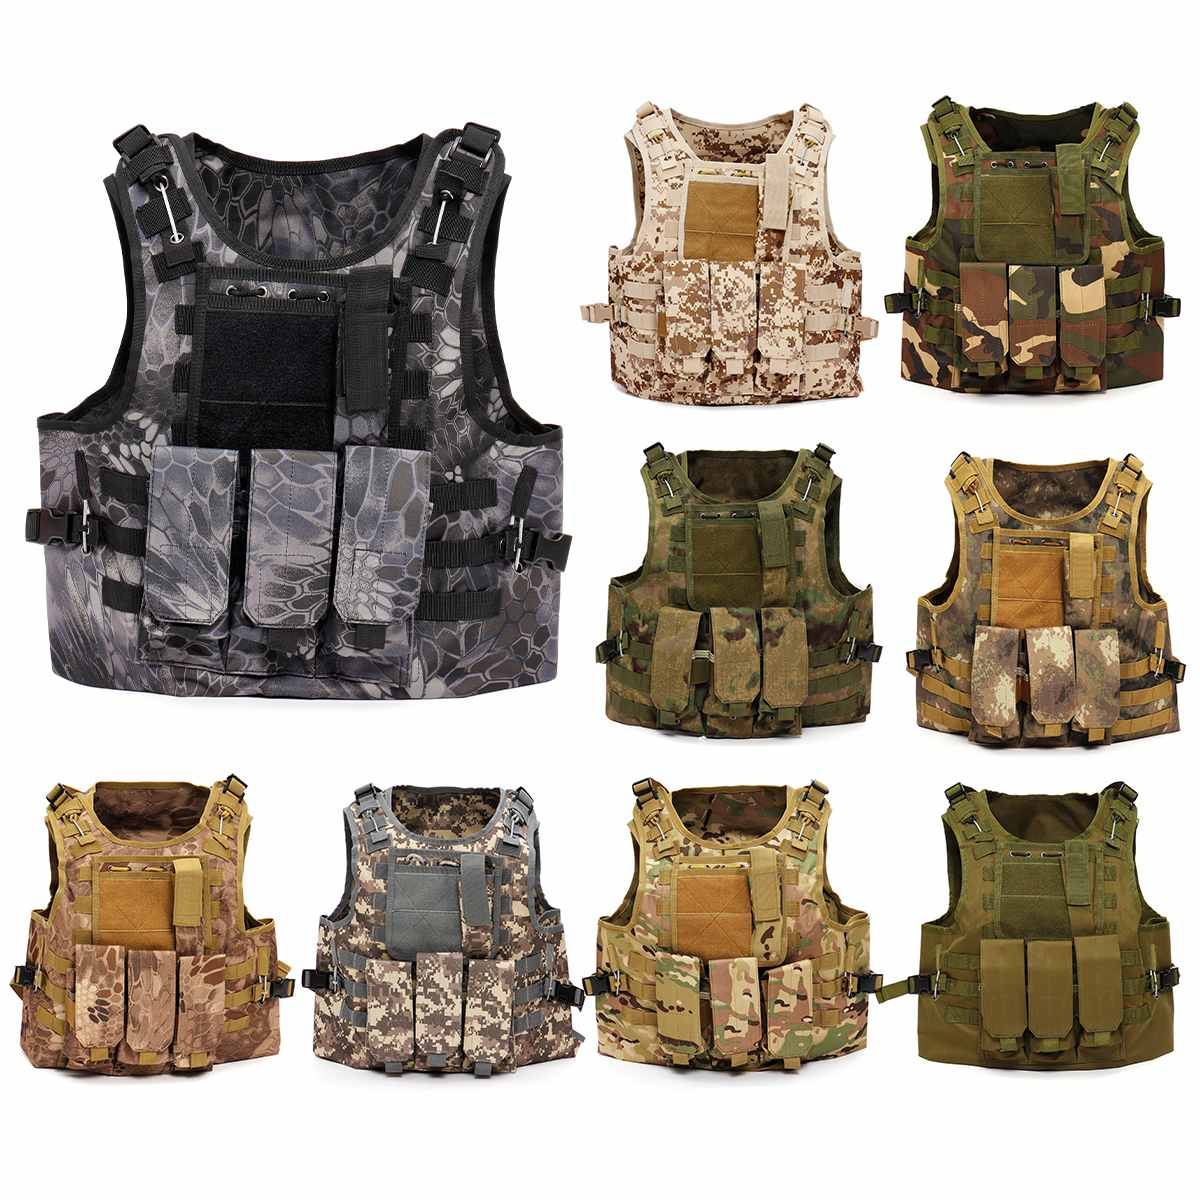 Unisex Adjustable Tactical Military Vest Army Paintball Airsoft Combat Assault Camouflage Vest Army Training Combat Uniform